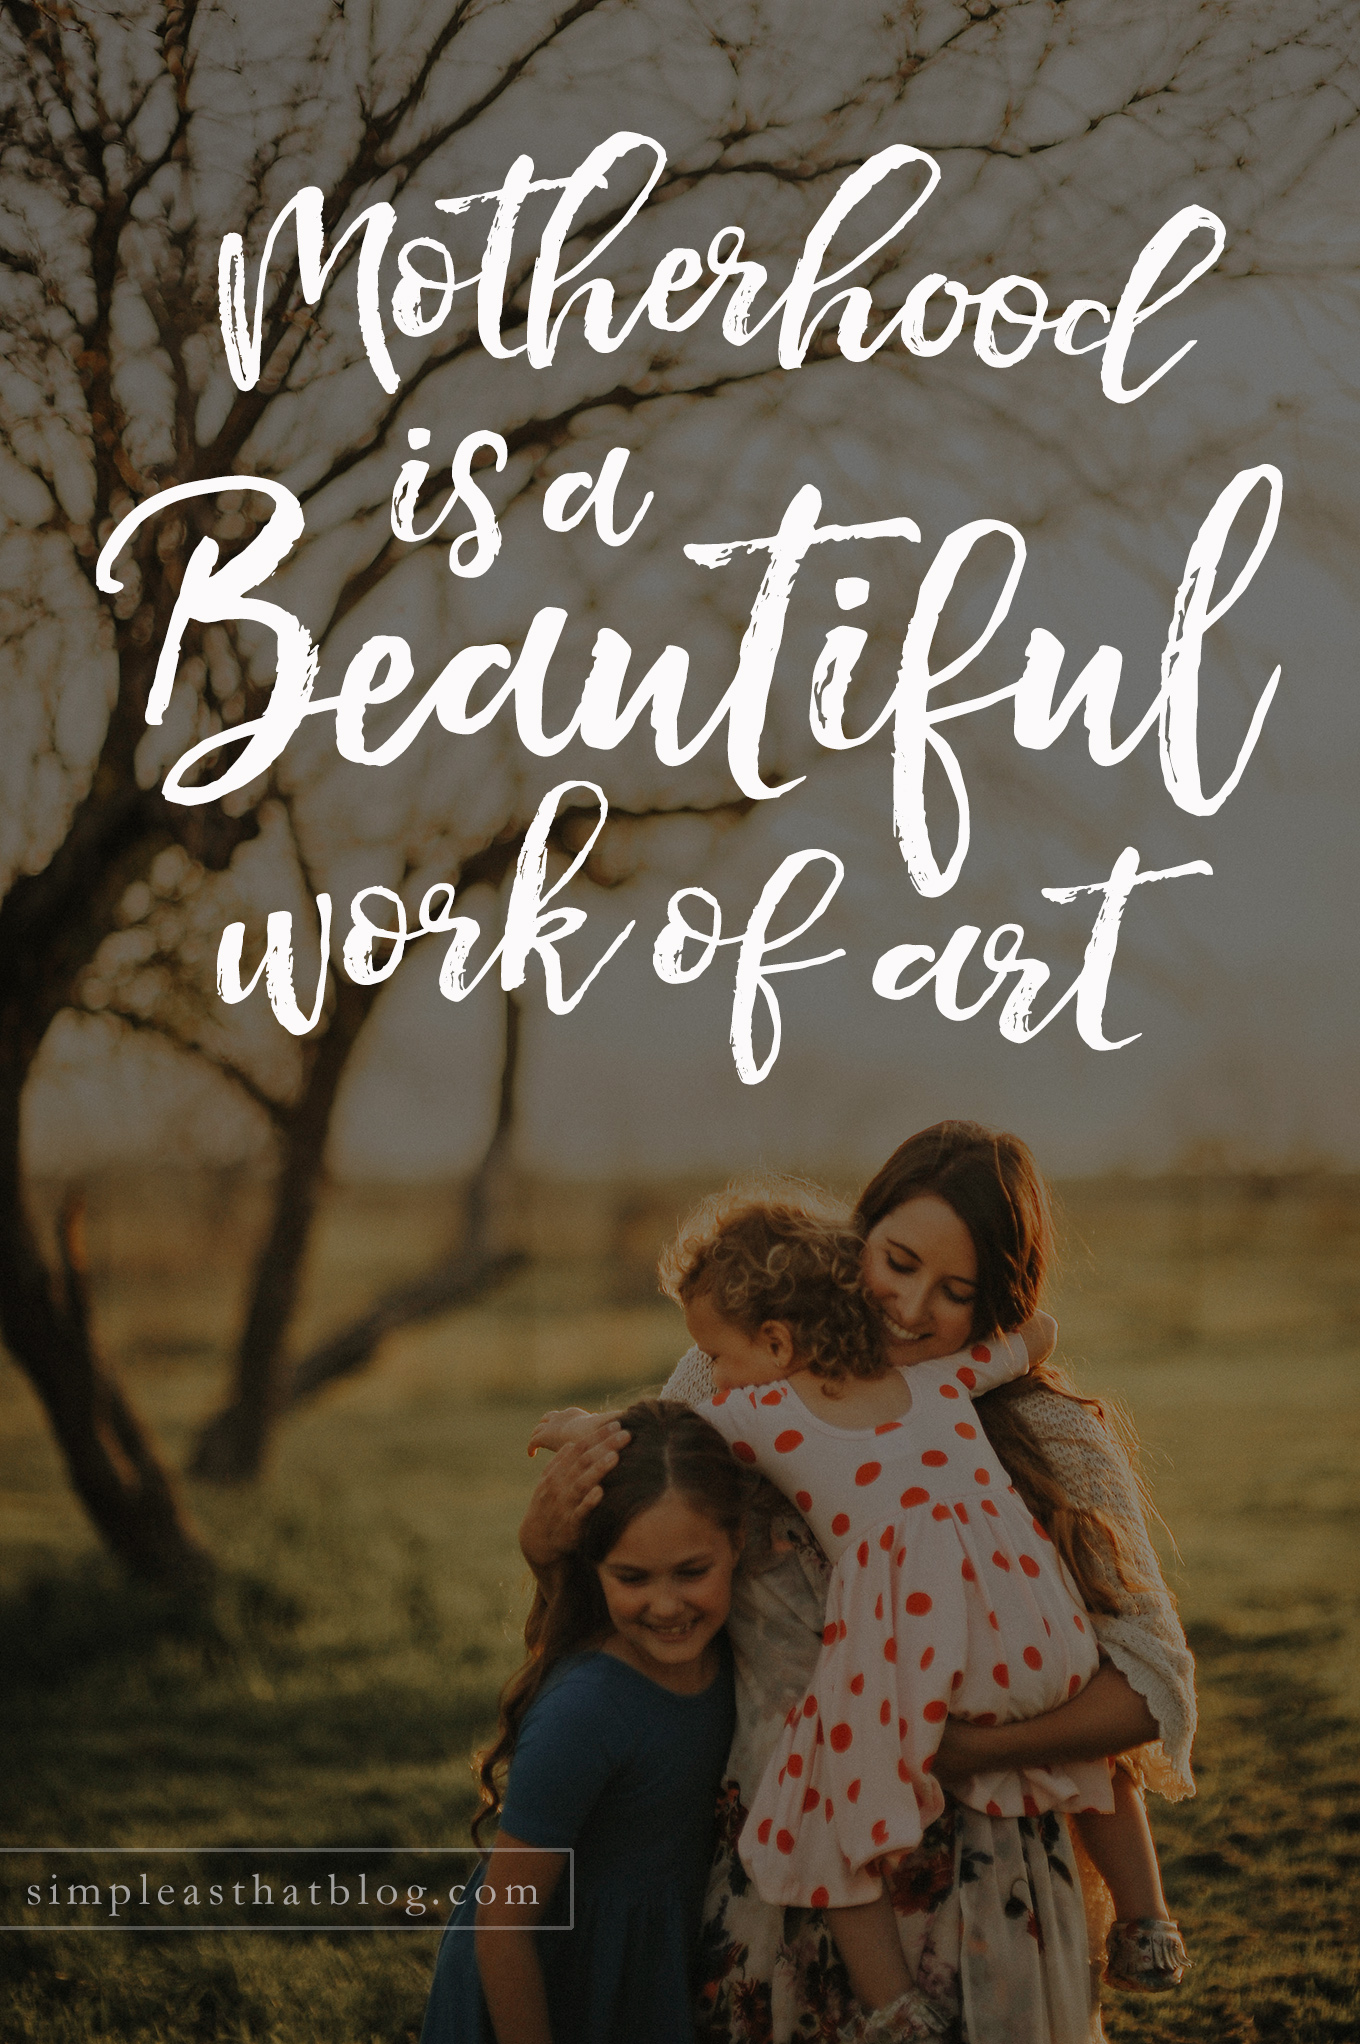 The tasks of motherhood often feel small and unnoticed, but each little moment we spend caring for and nurturing our children weaves together to become a beautiful work of art.